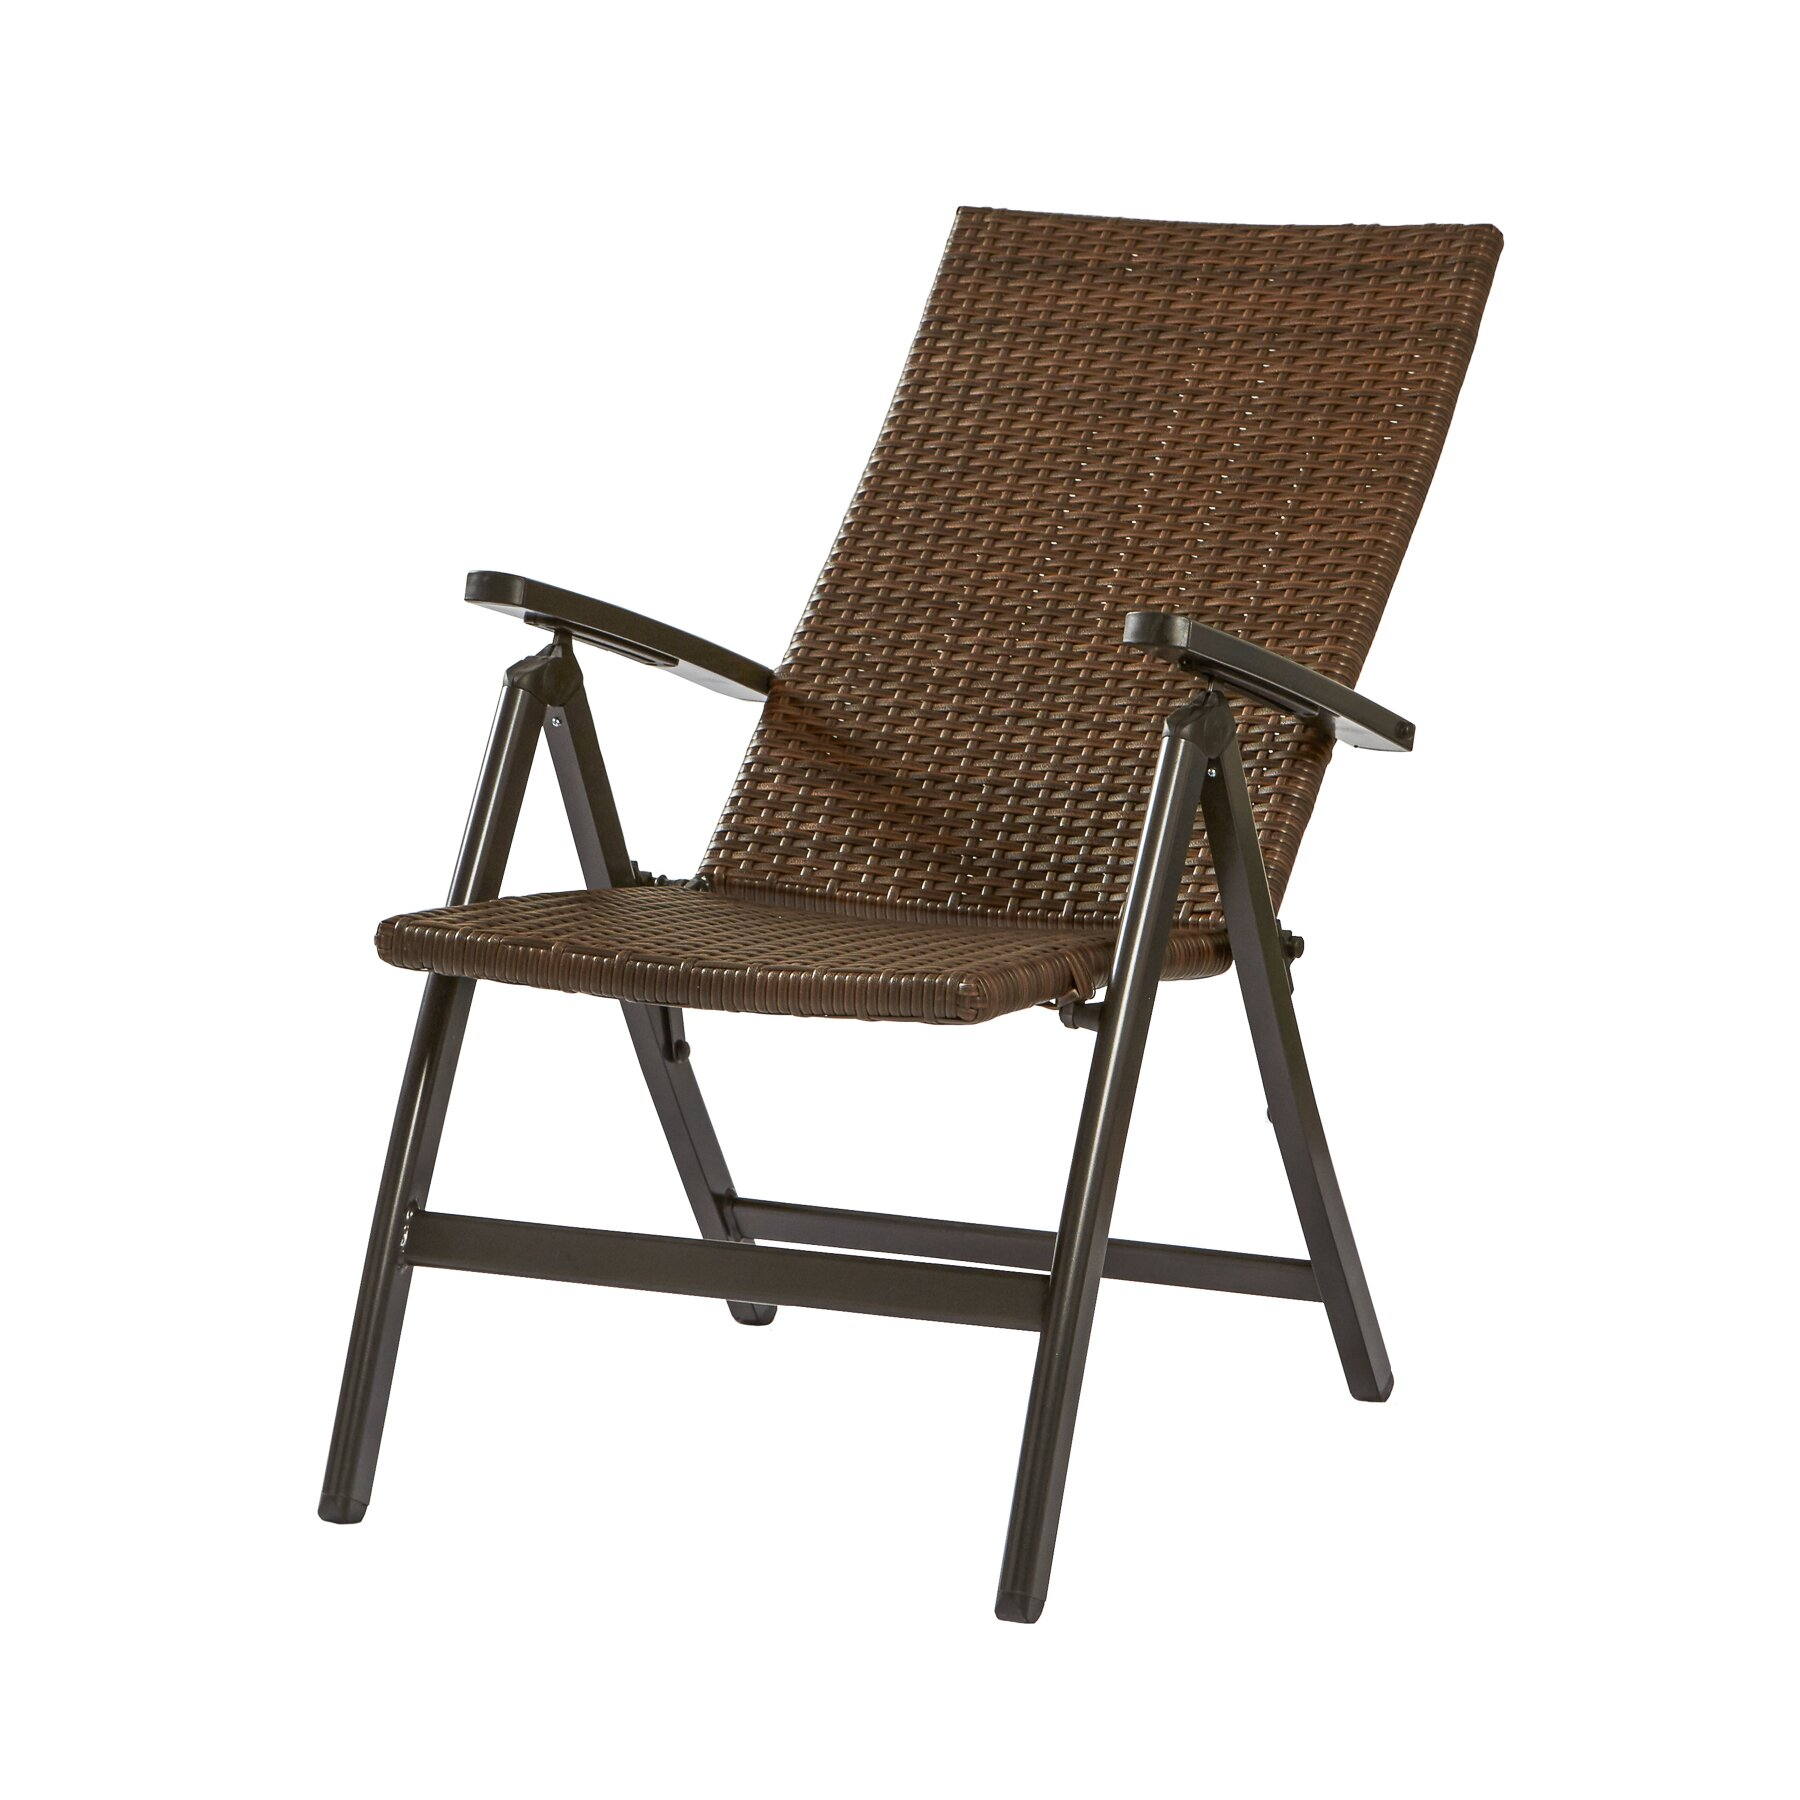 Greendale Home Fashions Wicker Outdoor Reclining Zero Gravity Chair & Rev